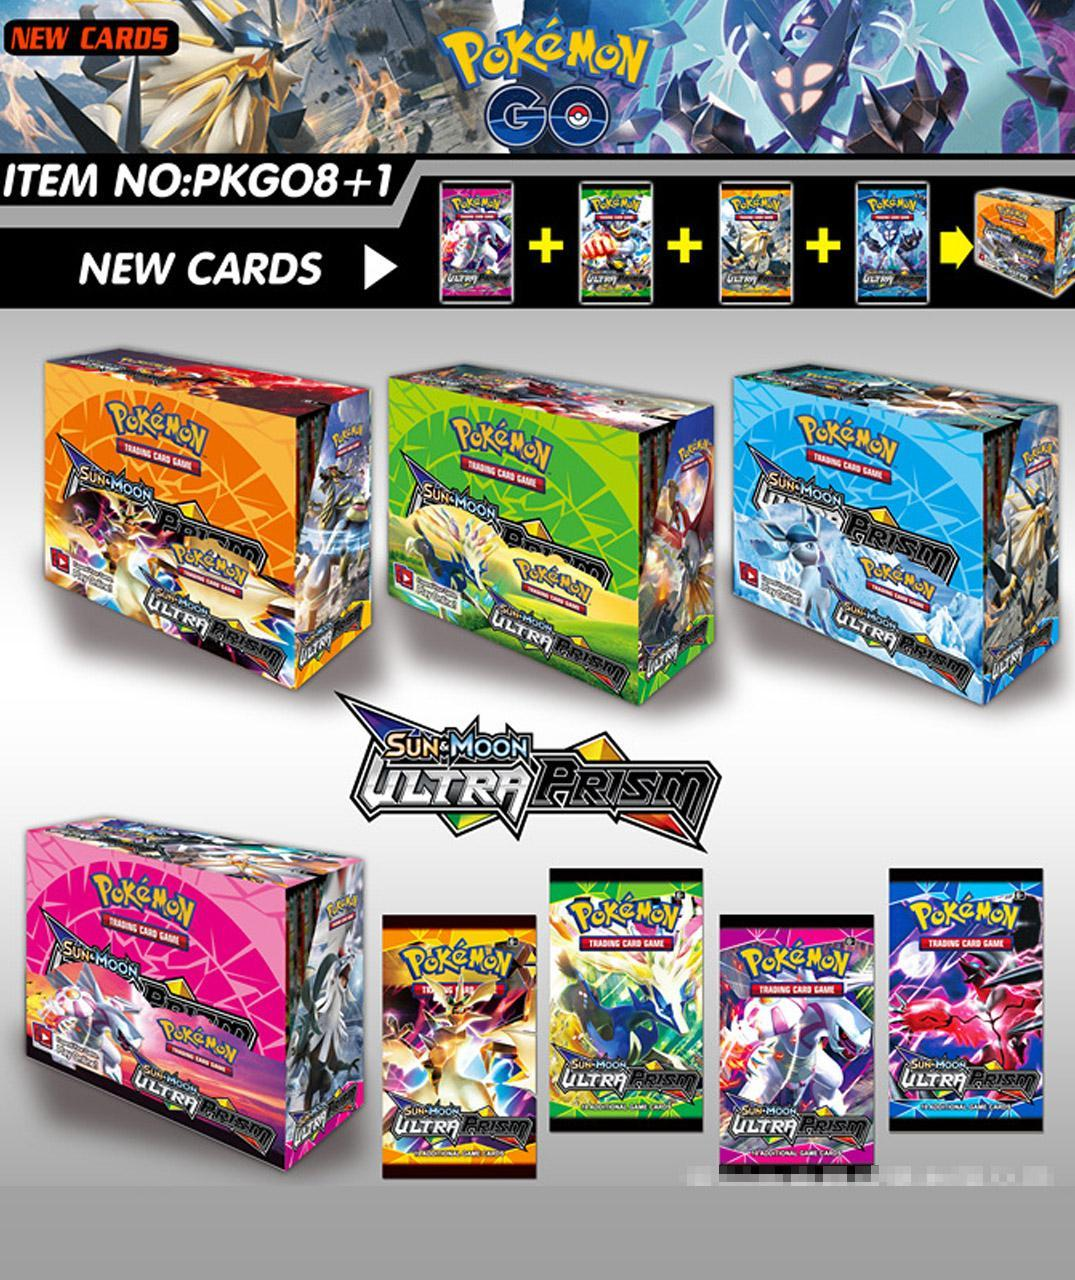 New 324Pcs/box Pokemon Card TCG Sun & Moon Ultra Prism 36 Pack Booster Box Collecting Trading Cards Game